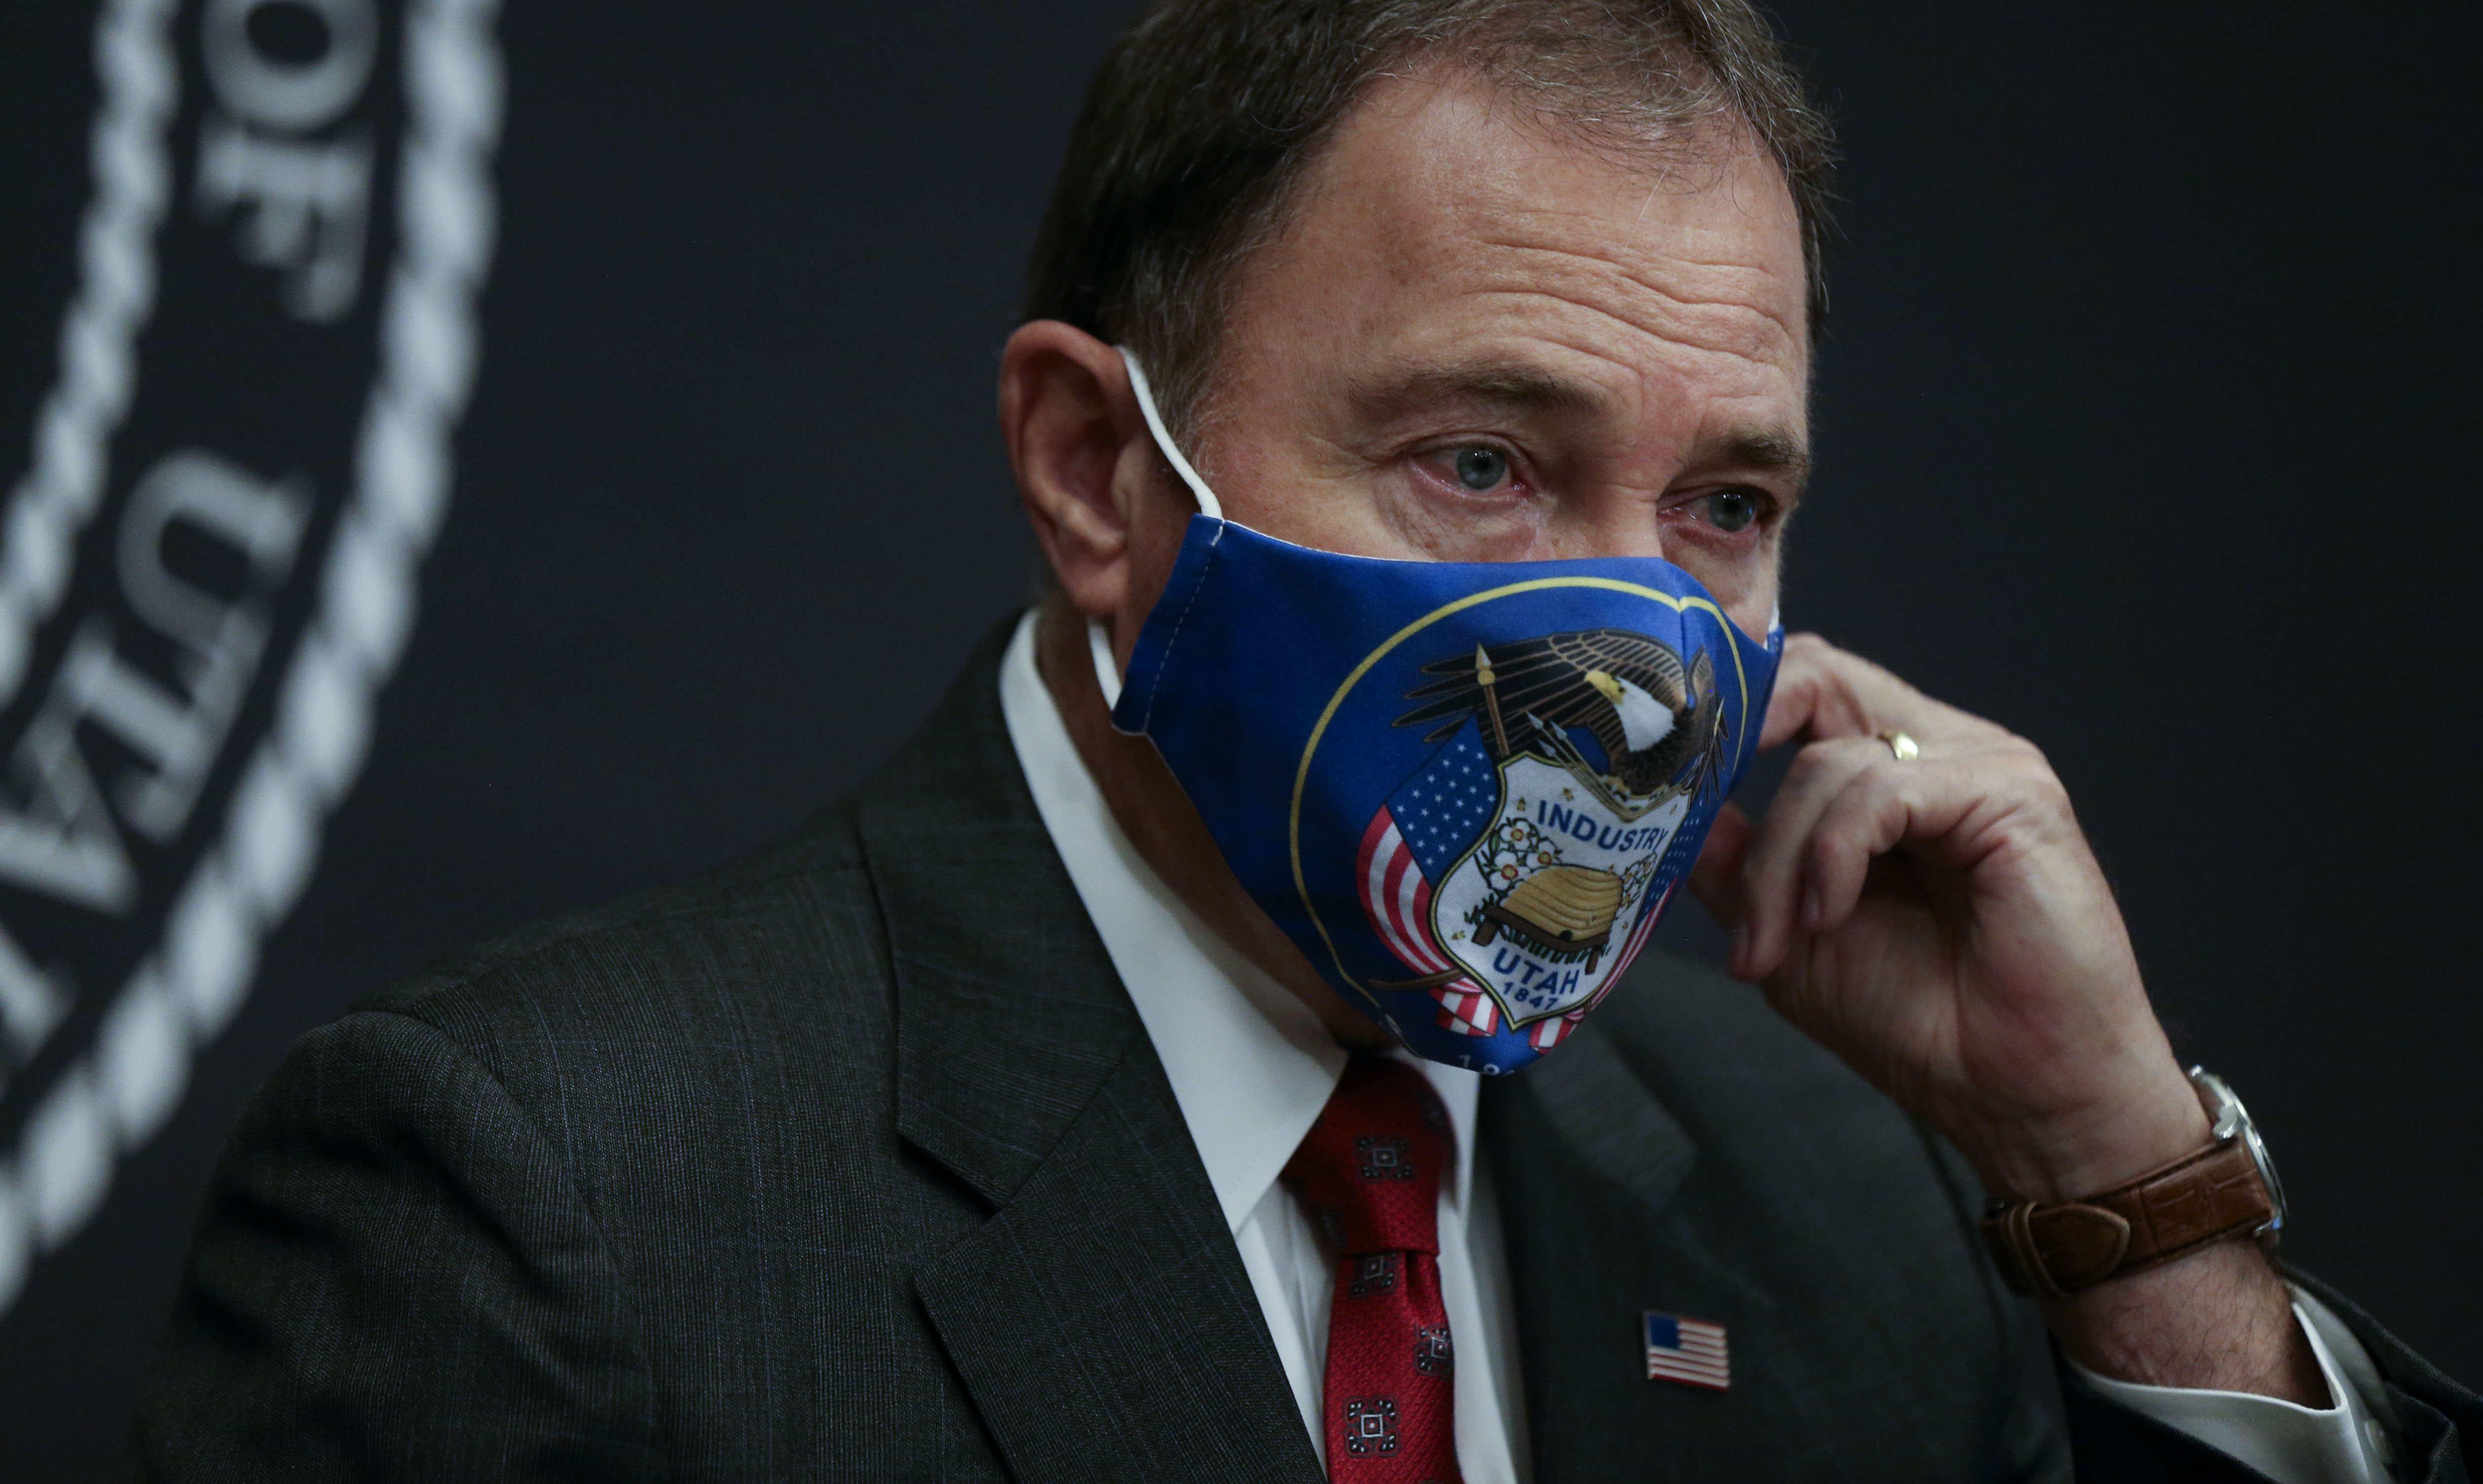 Gov. Gary Herbert removes a face mask before speaking at a COVID-19 briefing at the Capitol in Salt Lake City on Thursday, July 30, 2020.